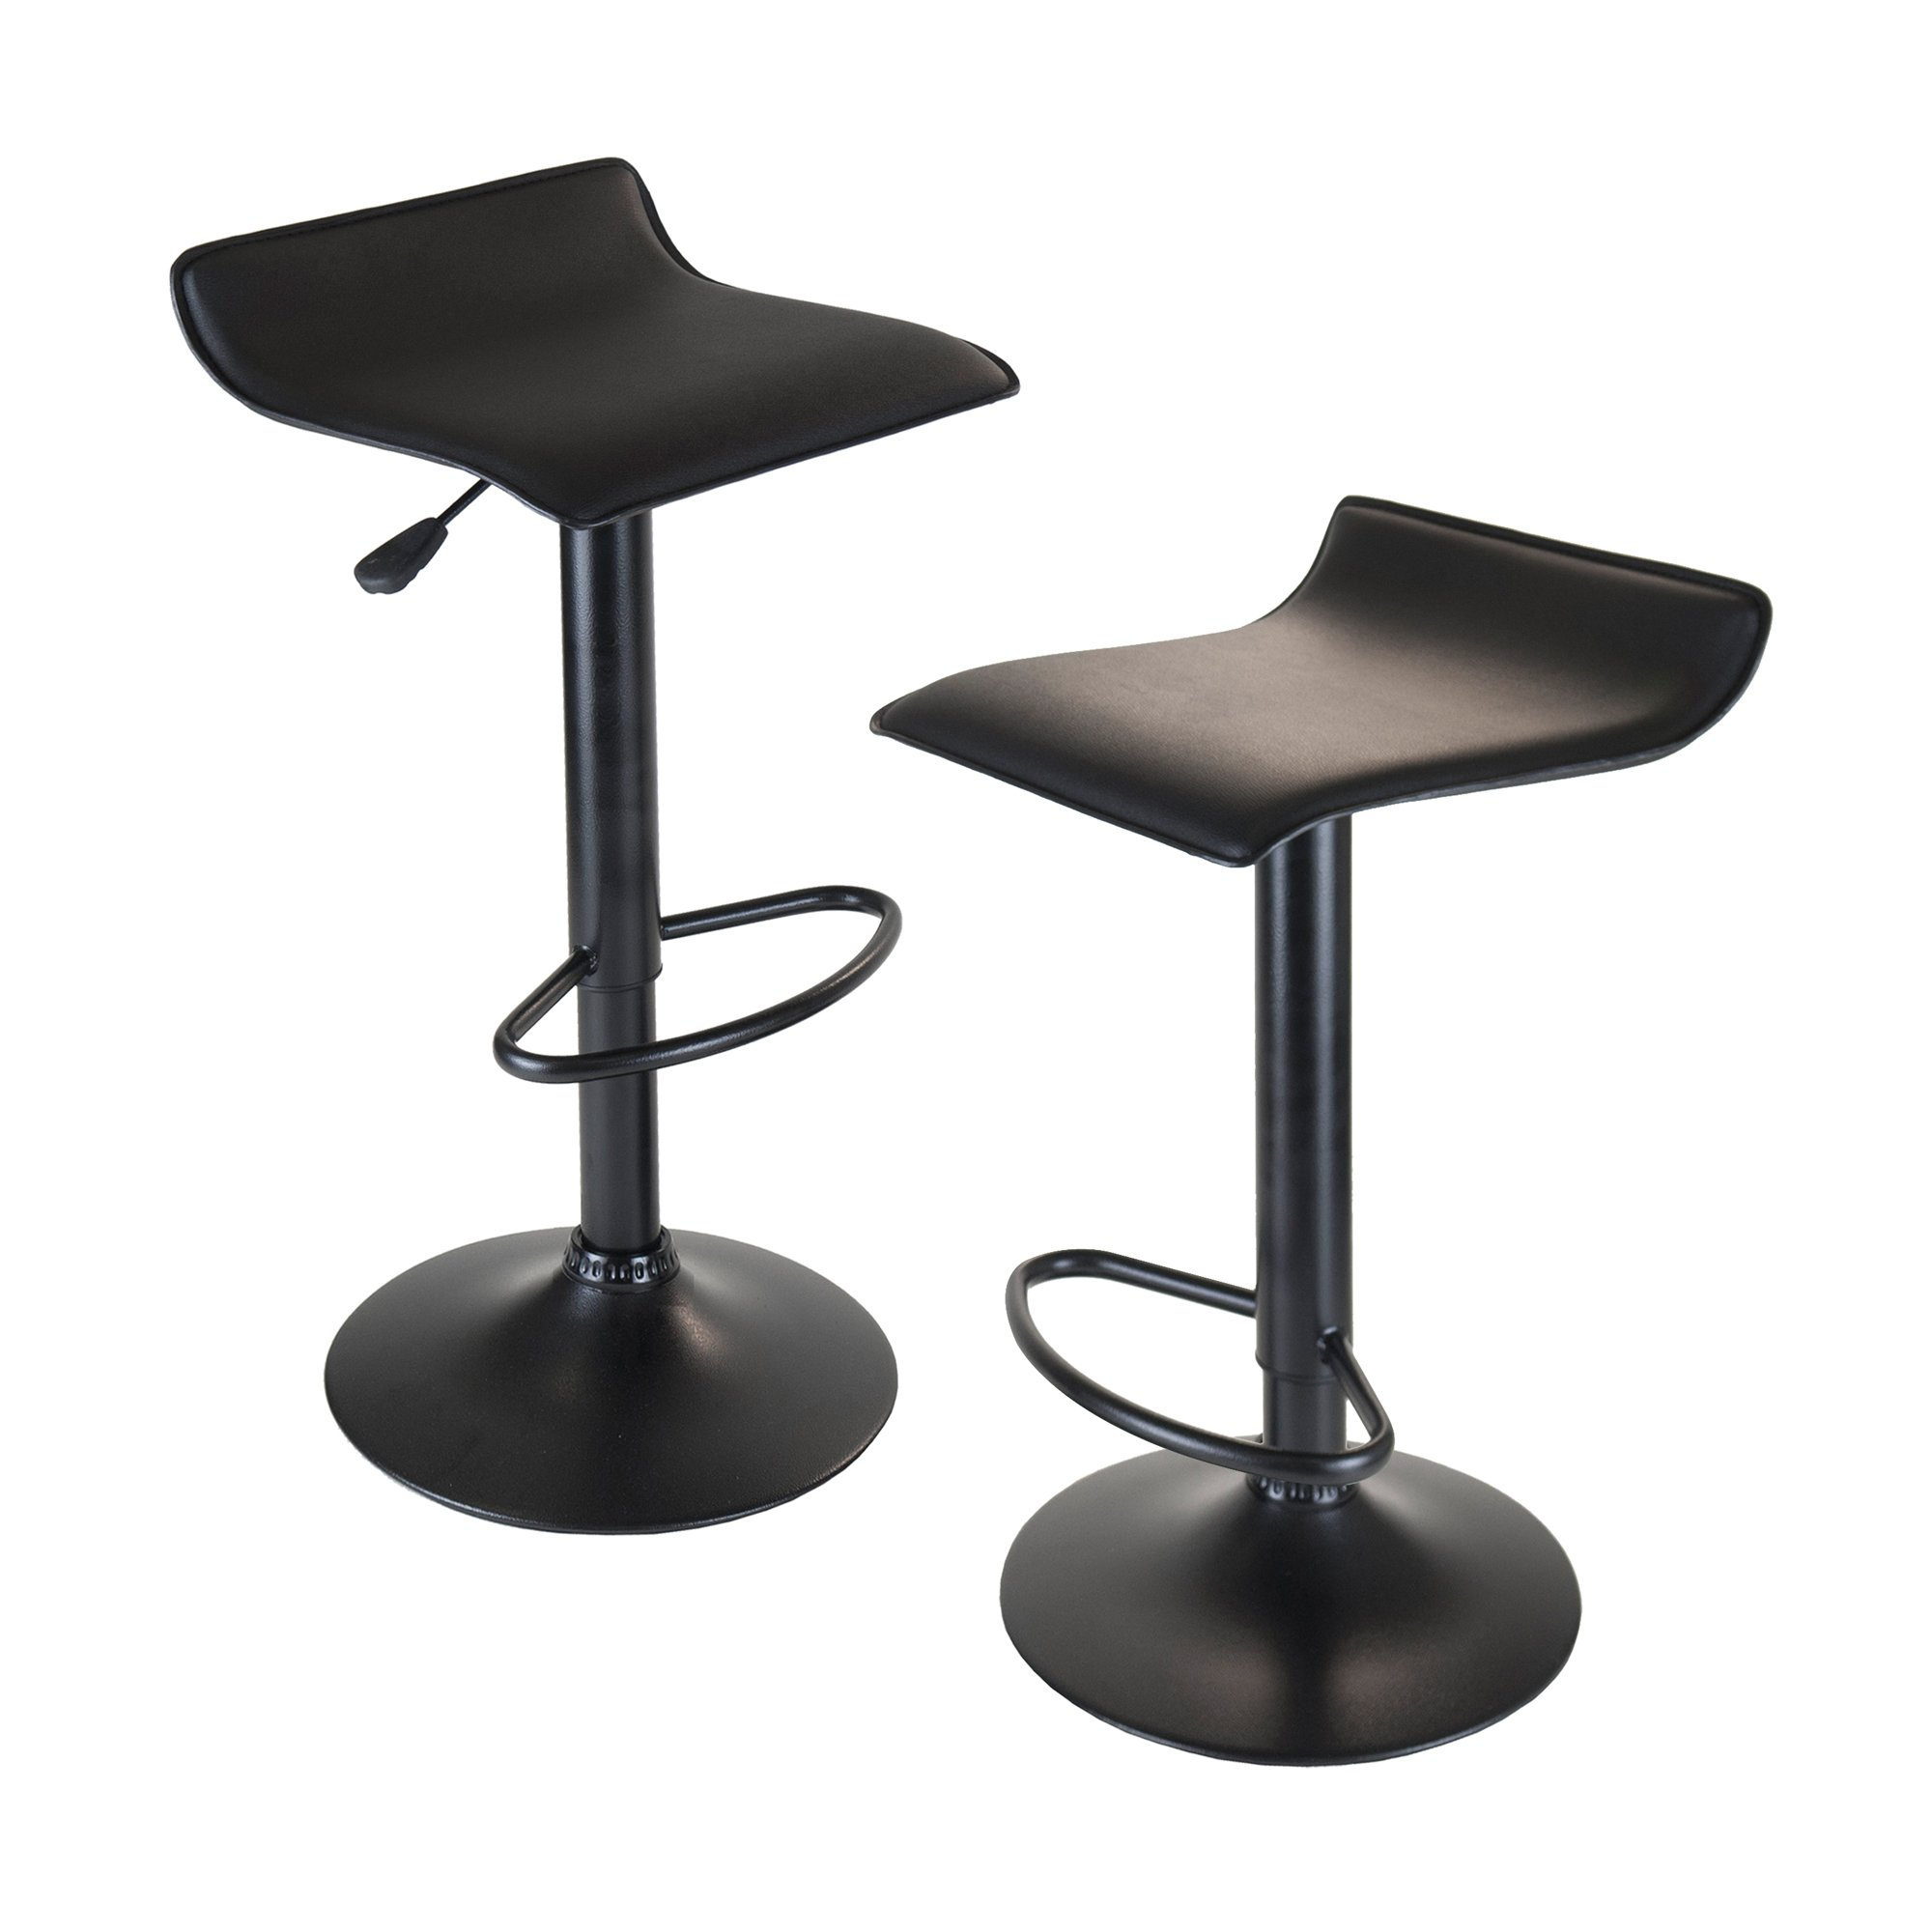 Winsome Wood Set of 2 Obsidian Adjustable Backless Swivel Air Lift Stool, PVC Seat, Black Metal Post and Base